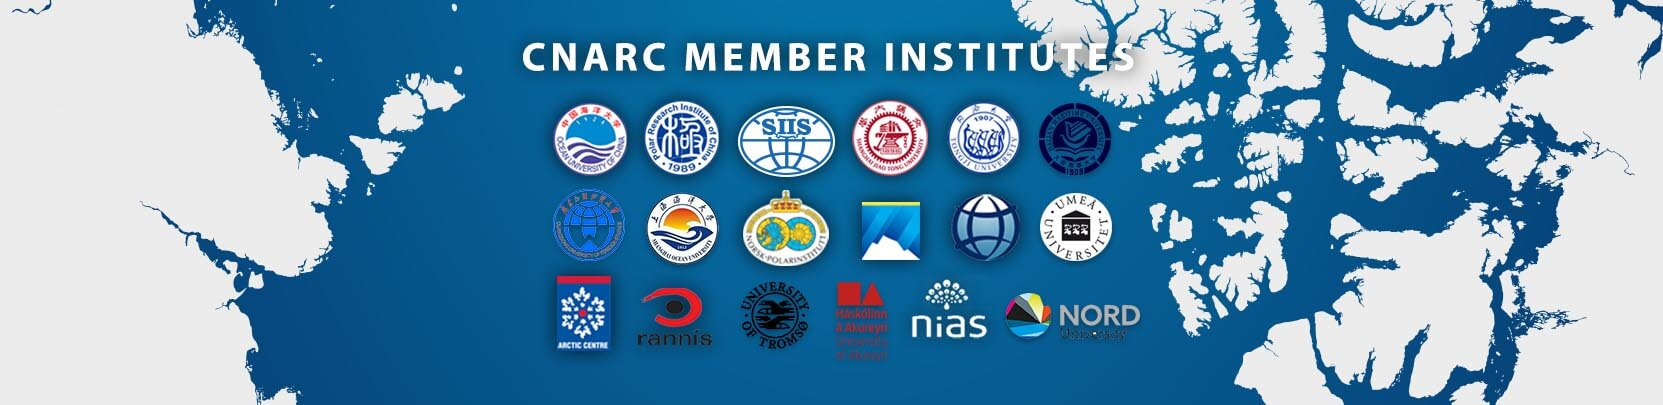 CNARC Member Institutes